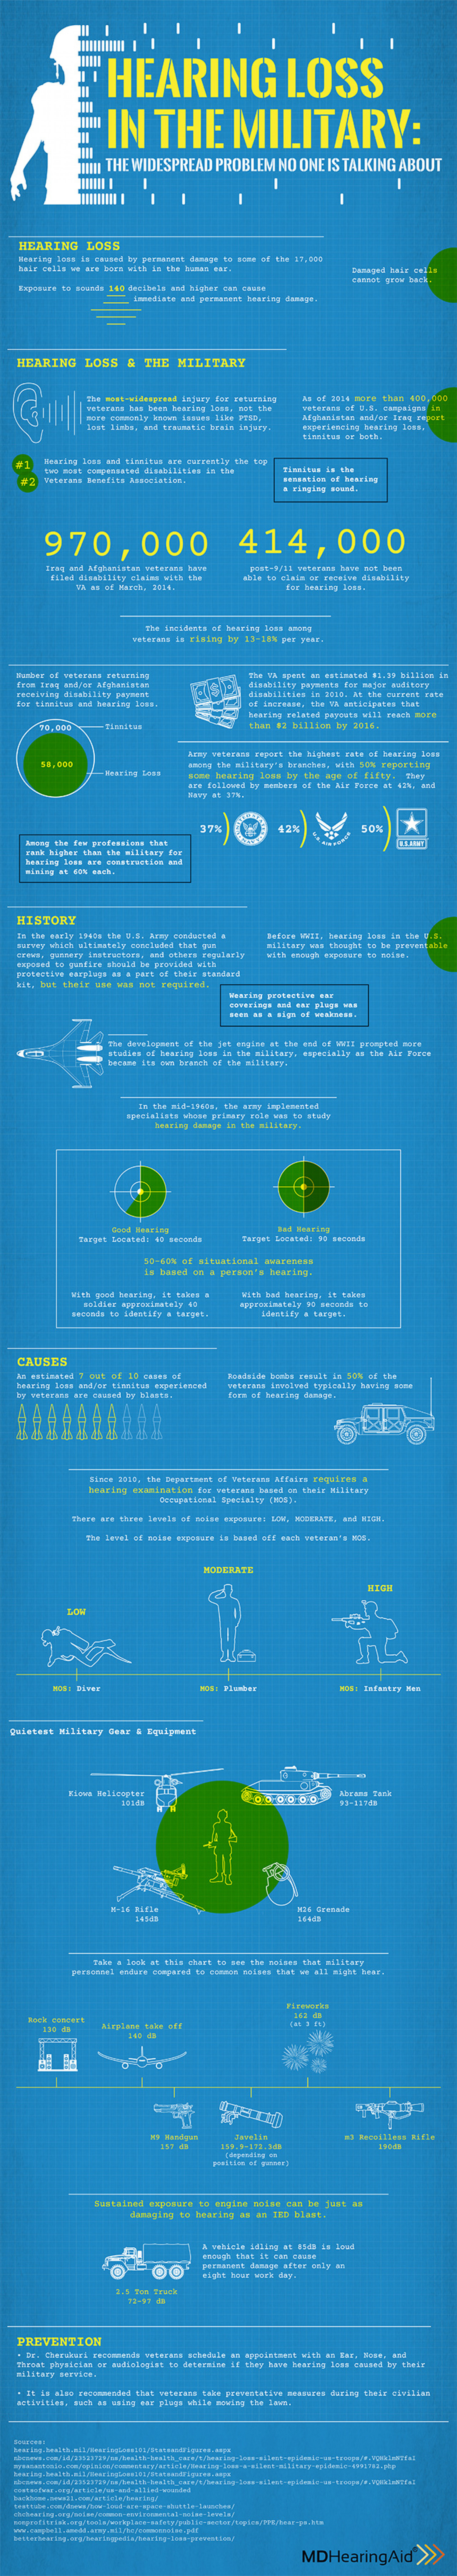 Hearing Loss In The Military Infographic